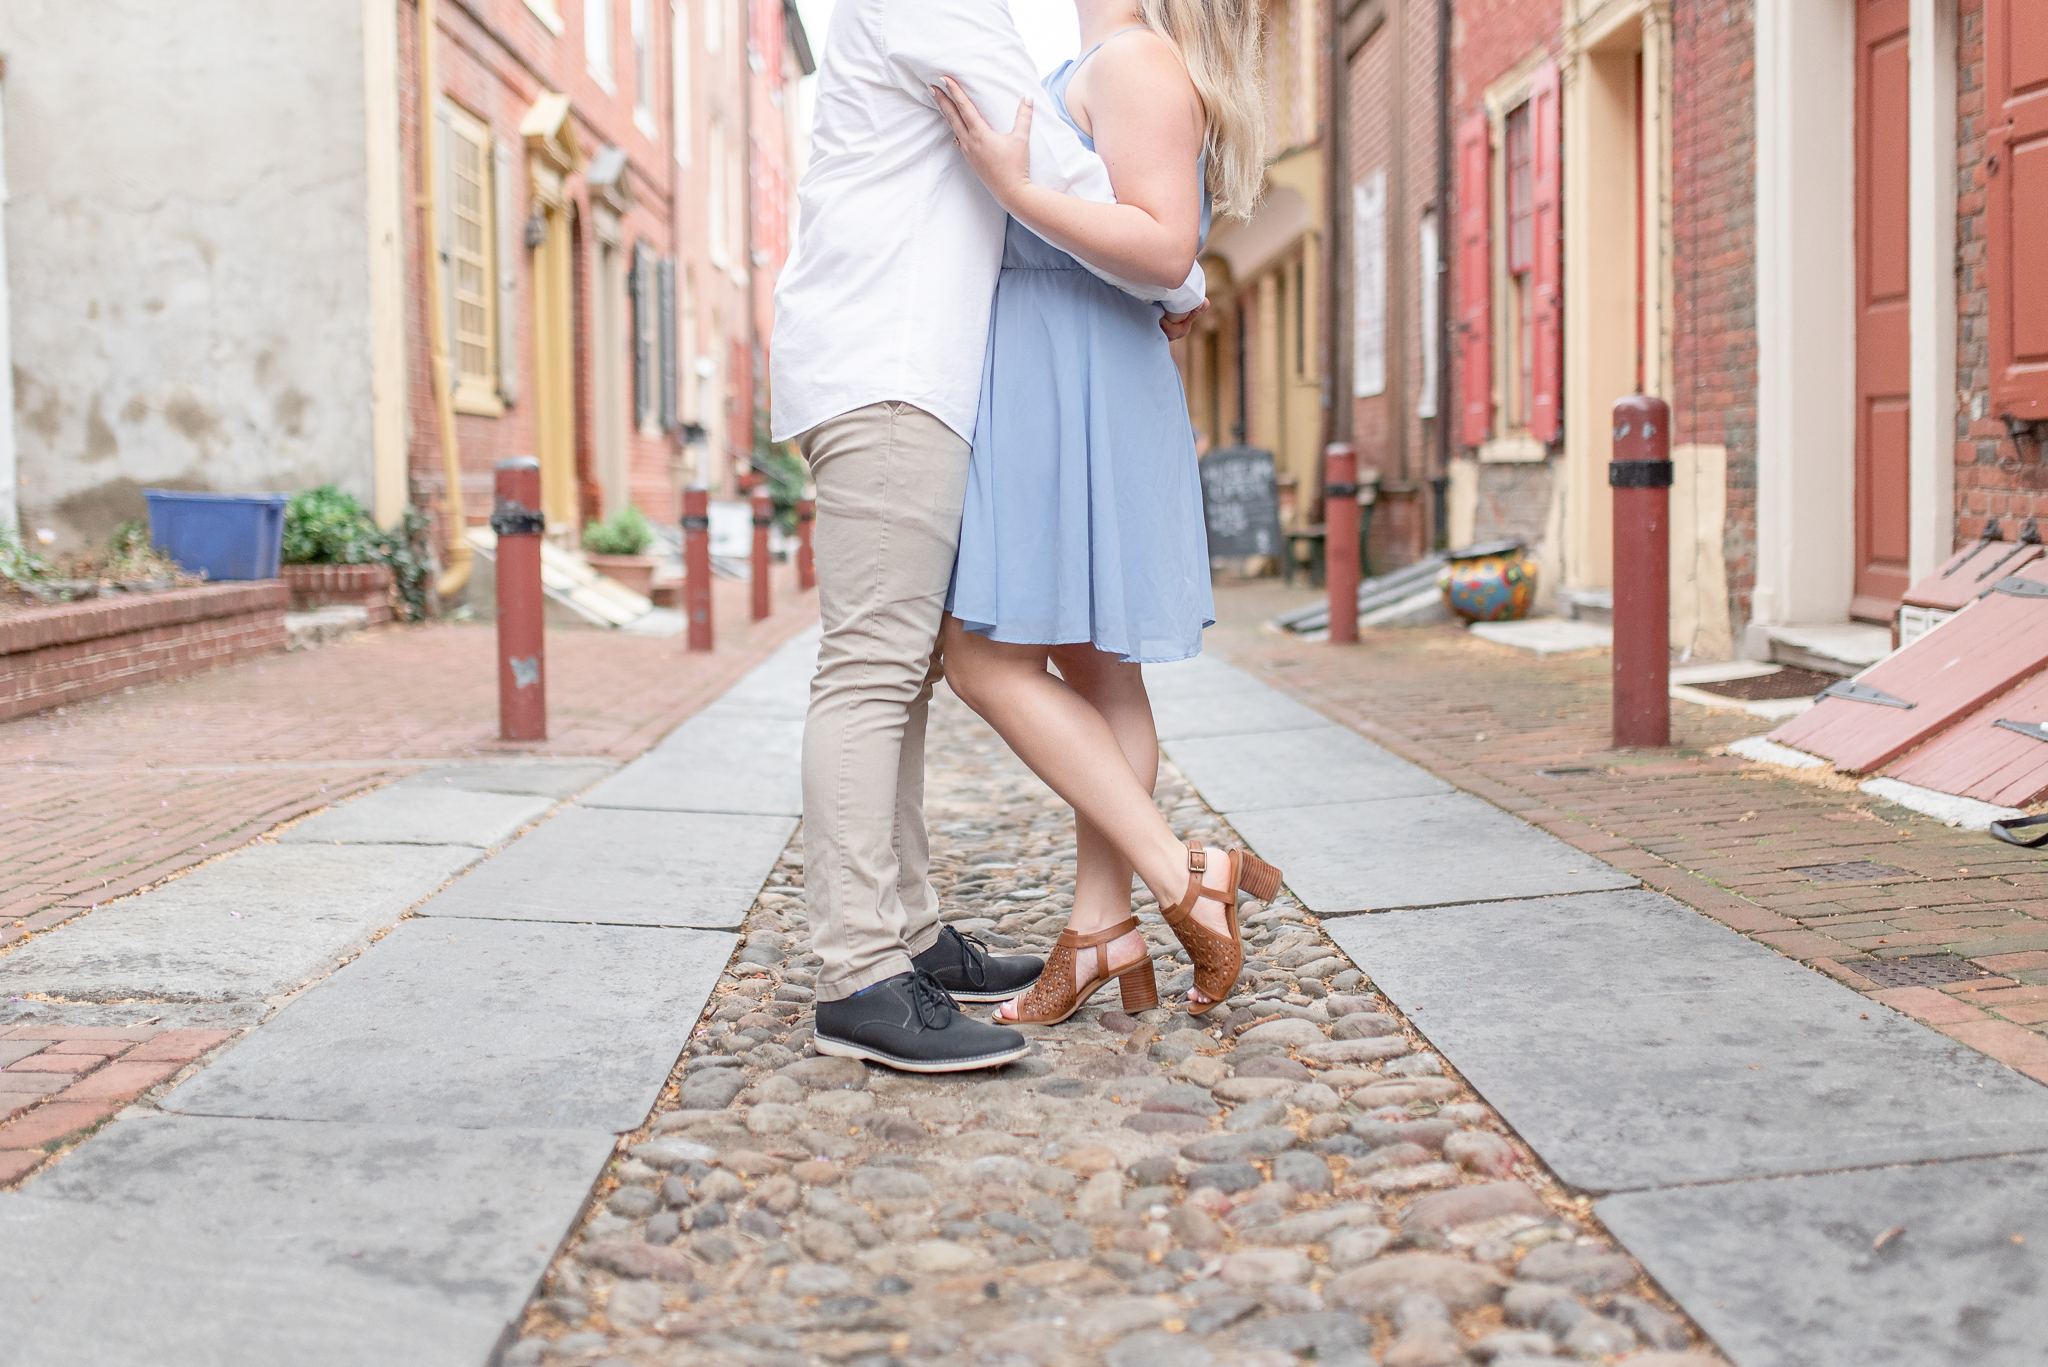 04_14_2019_Dana_Slifer_Photography_Alyssa_and_Brett_Engagement_Session_27.jpg